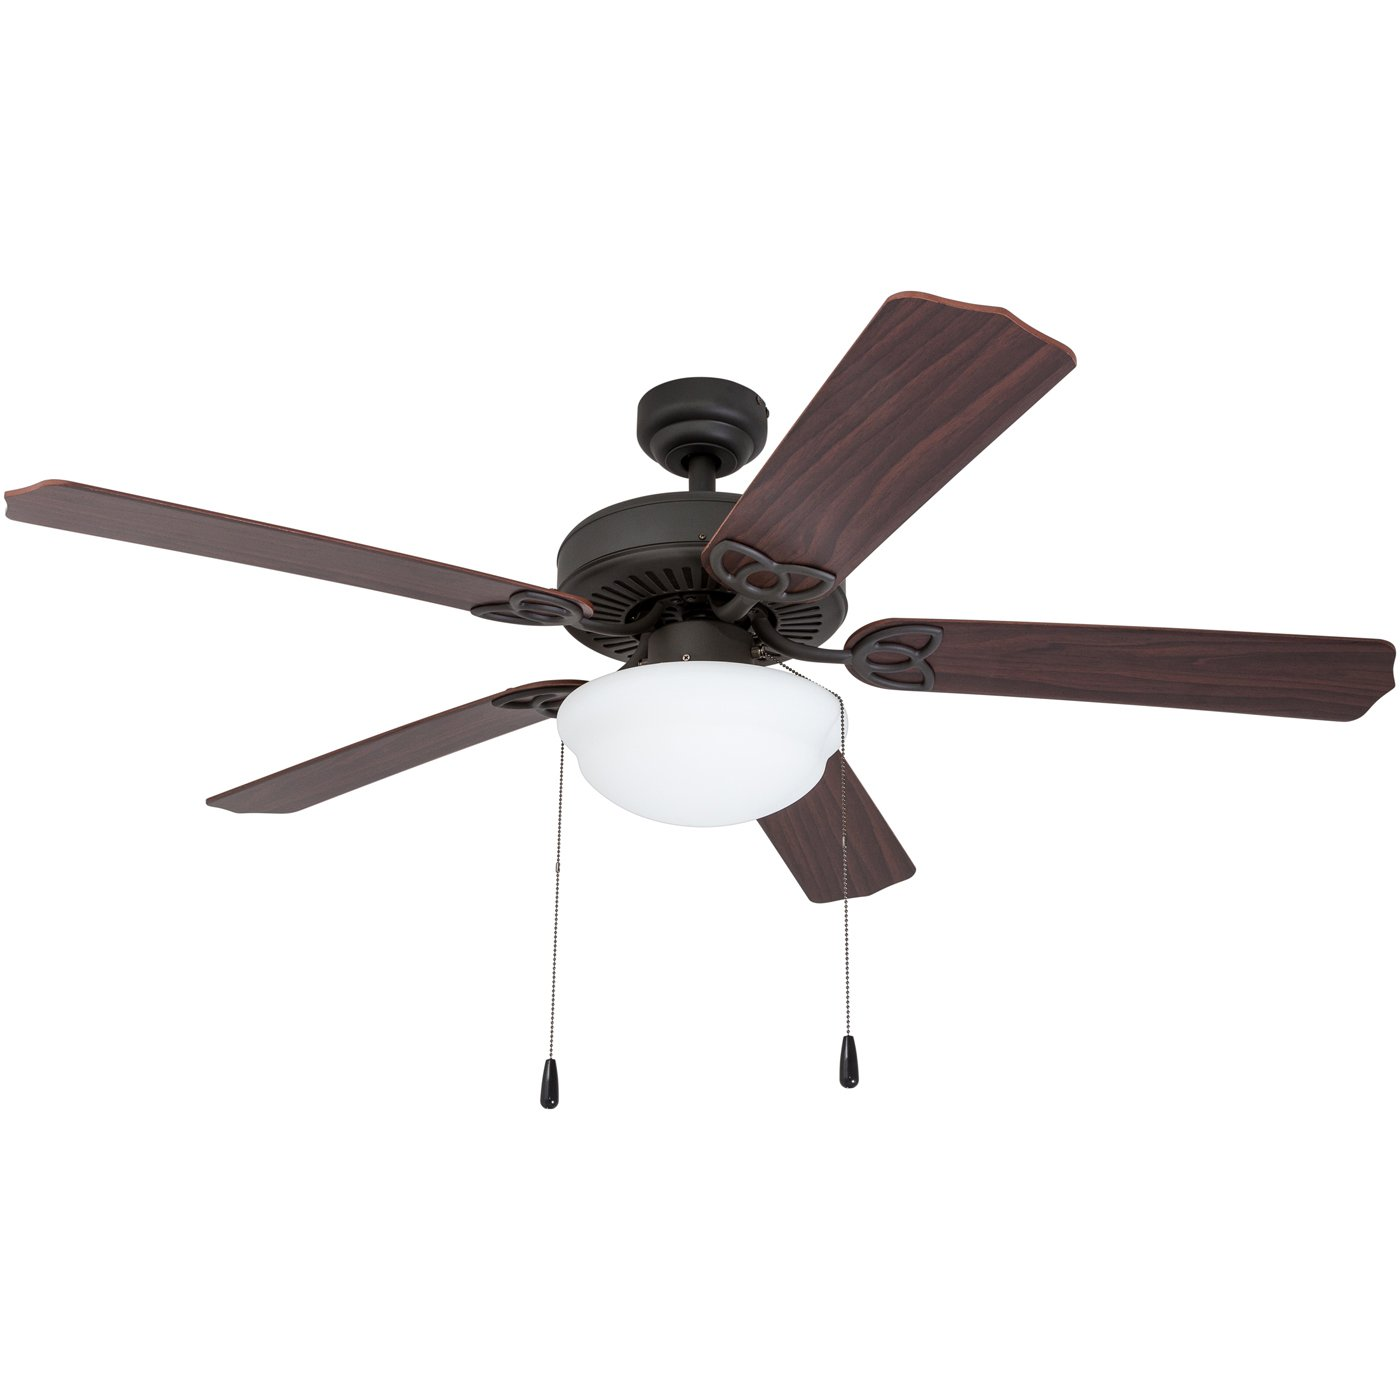 Prominence Home 80028-01 Dove Creek LED Ceiling Fan, Globe Light, Reversible Fan Blades, 52 inches, Bronze